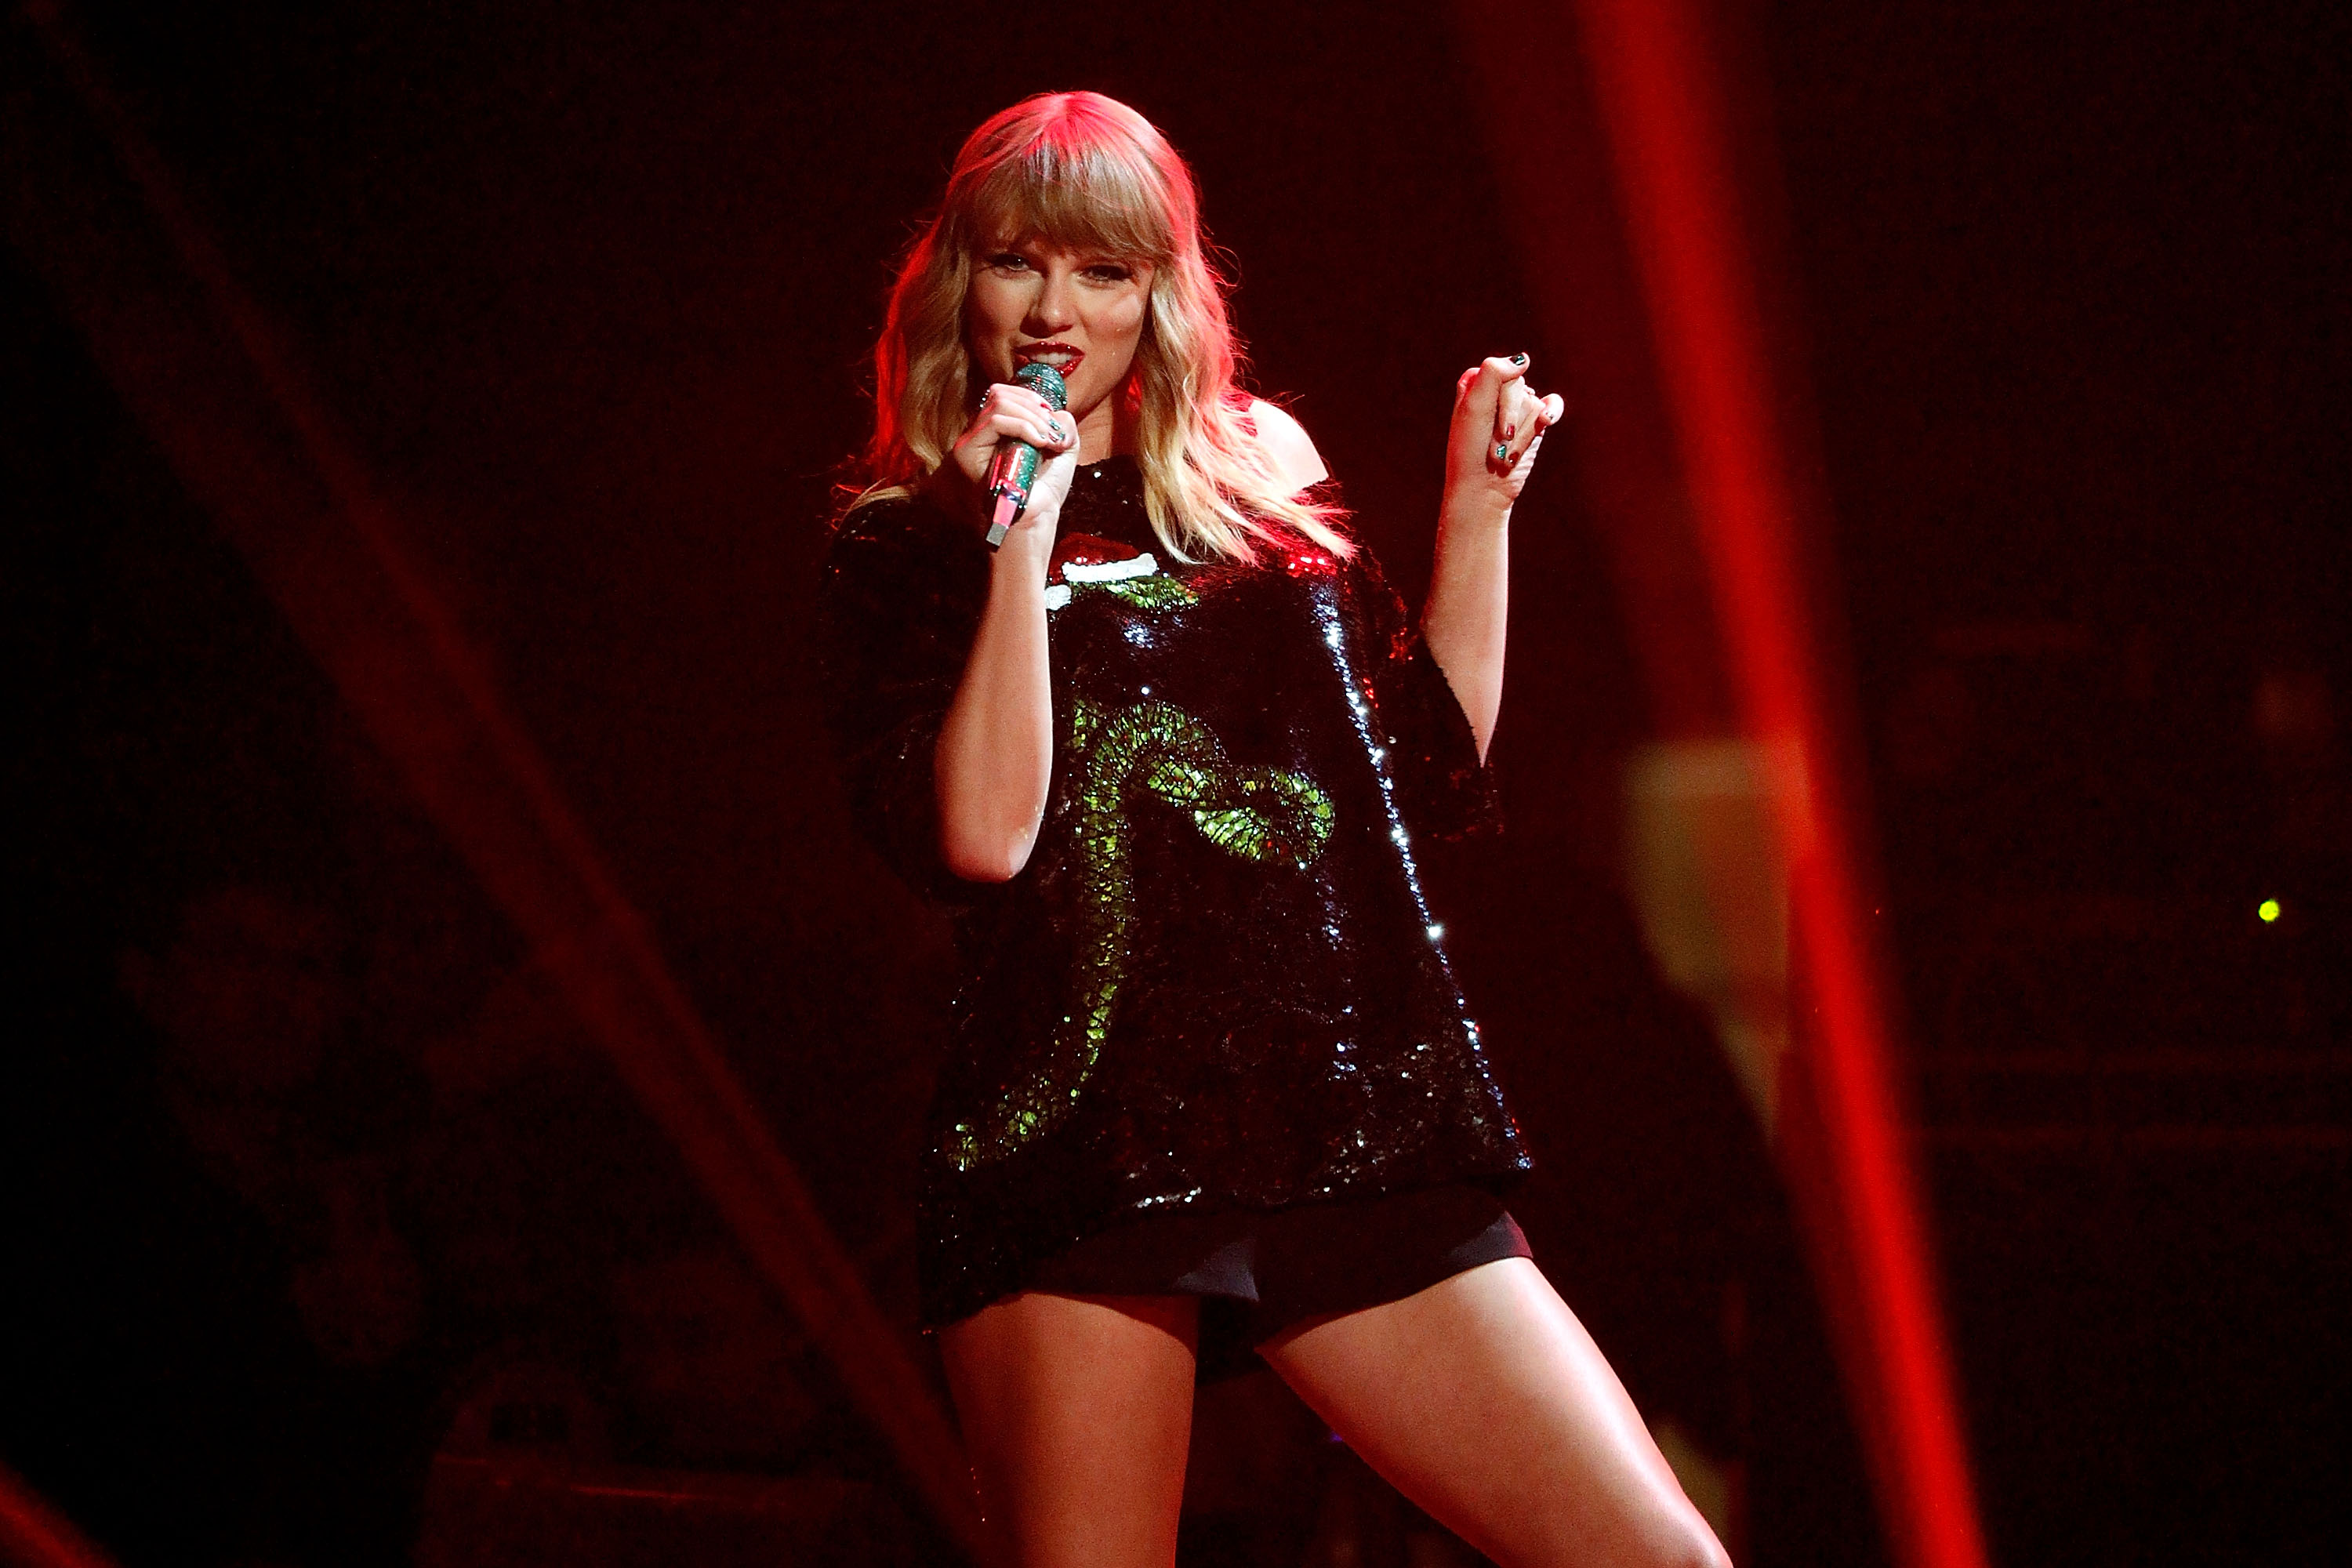 Taylor Swift performs during the 2017 Z100 Jingle Ball at Madison Square Garden on Dec. 8, 2017 in New York City.